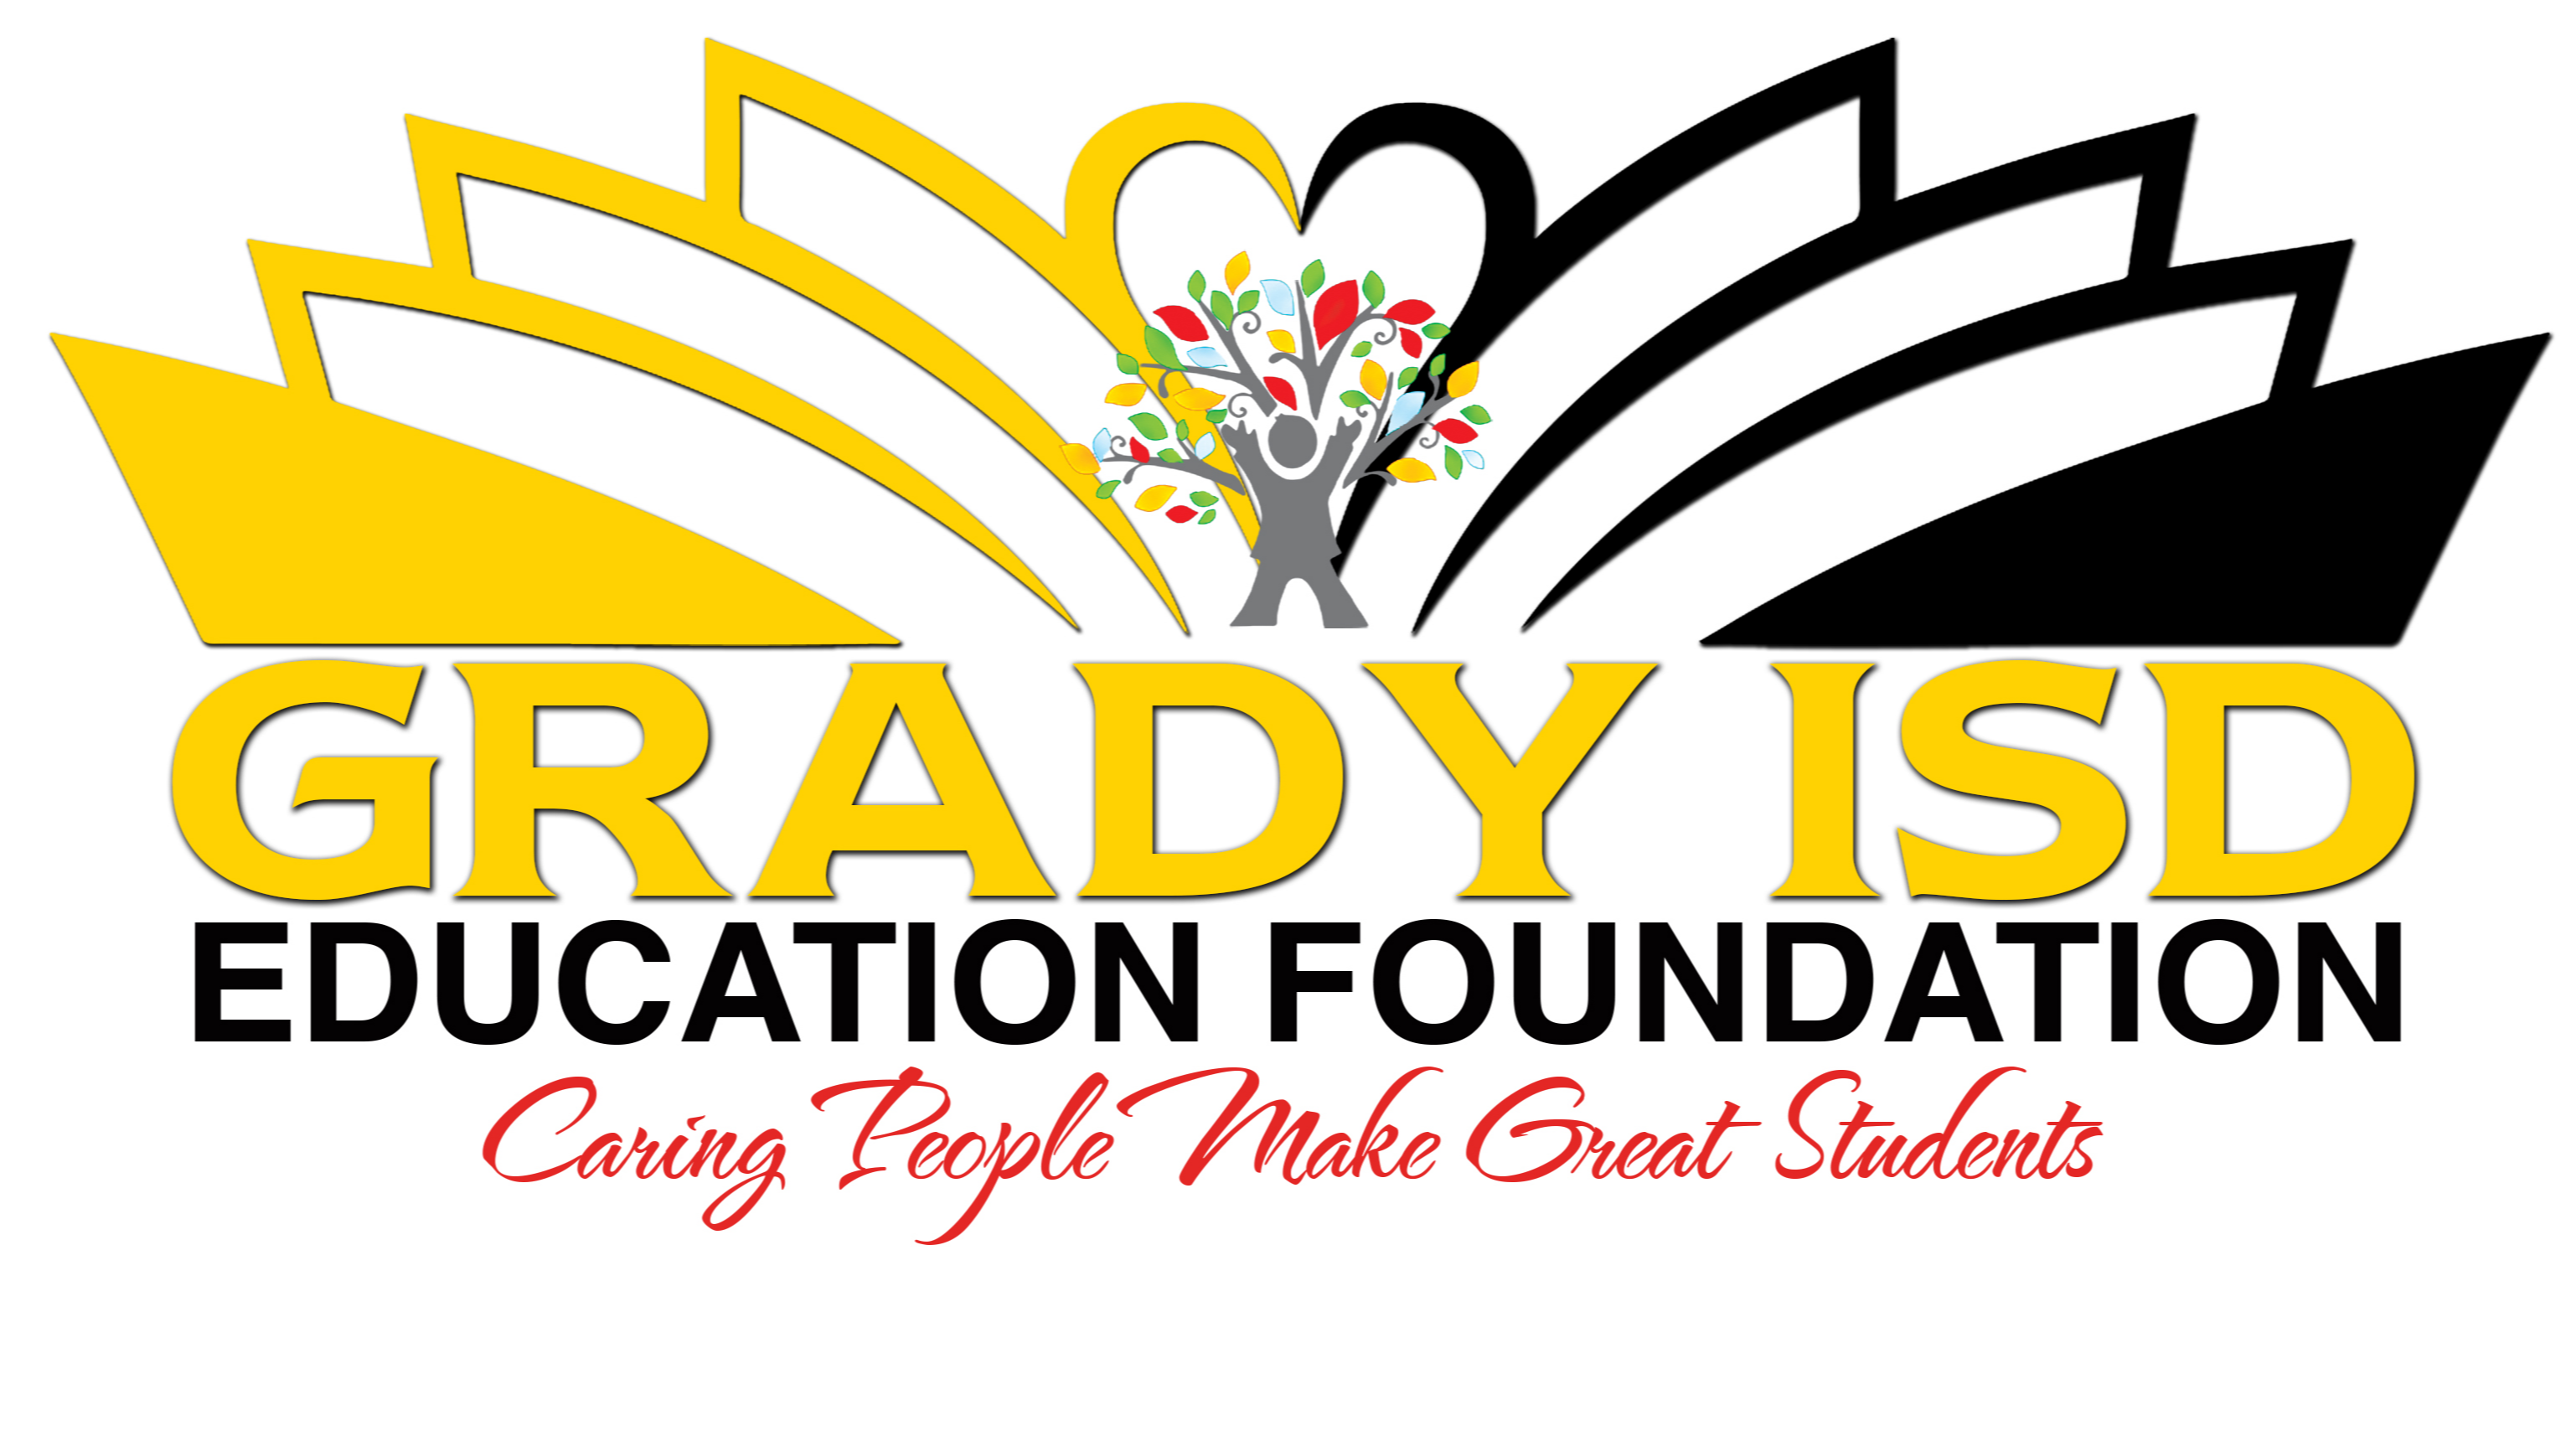 Grady ISD Education Foundation: Caring People Make Great Students